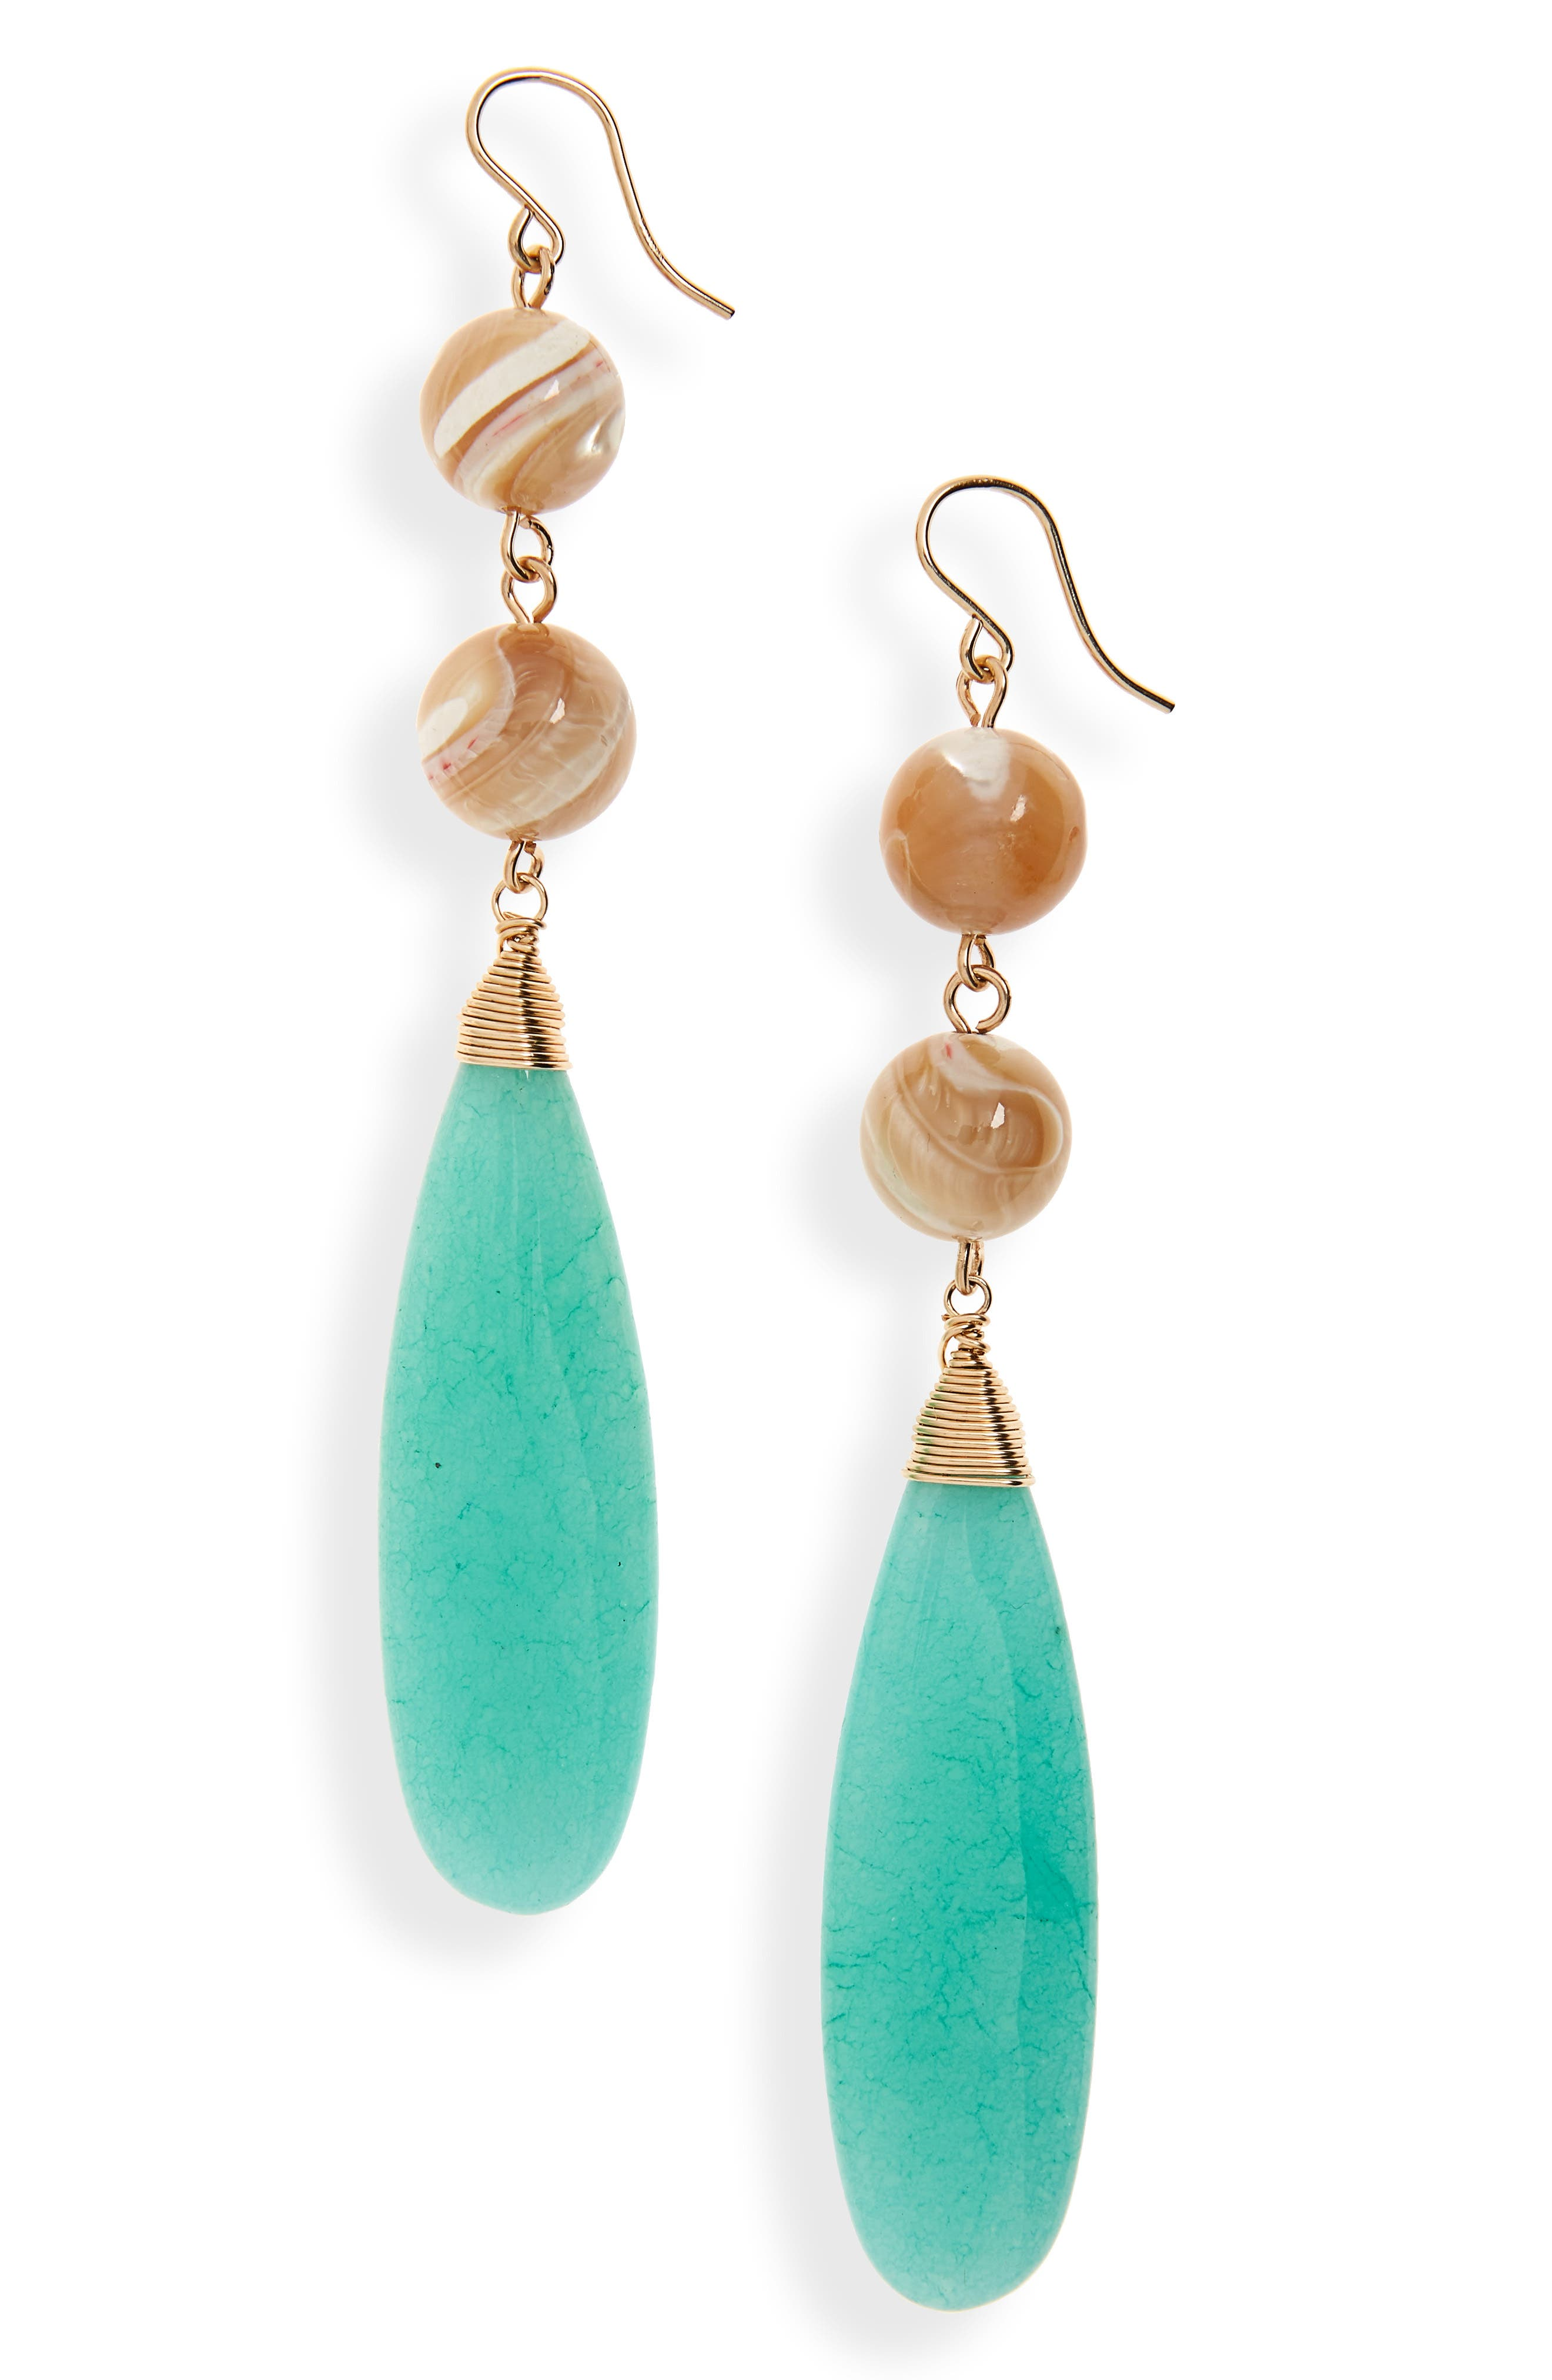 BECK JEWELS, Jade Shoulder Duster Earrings, Main thumbnail 1, color, JADE